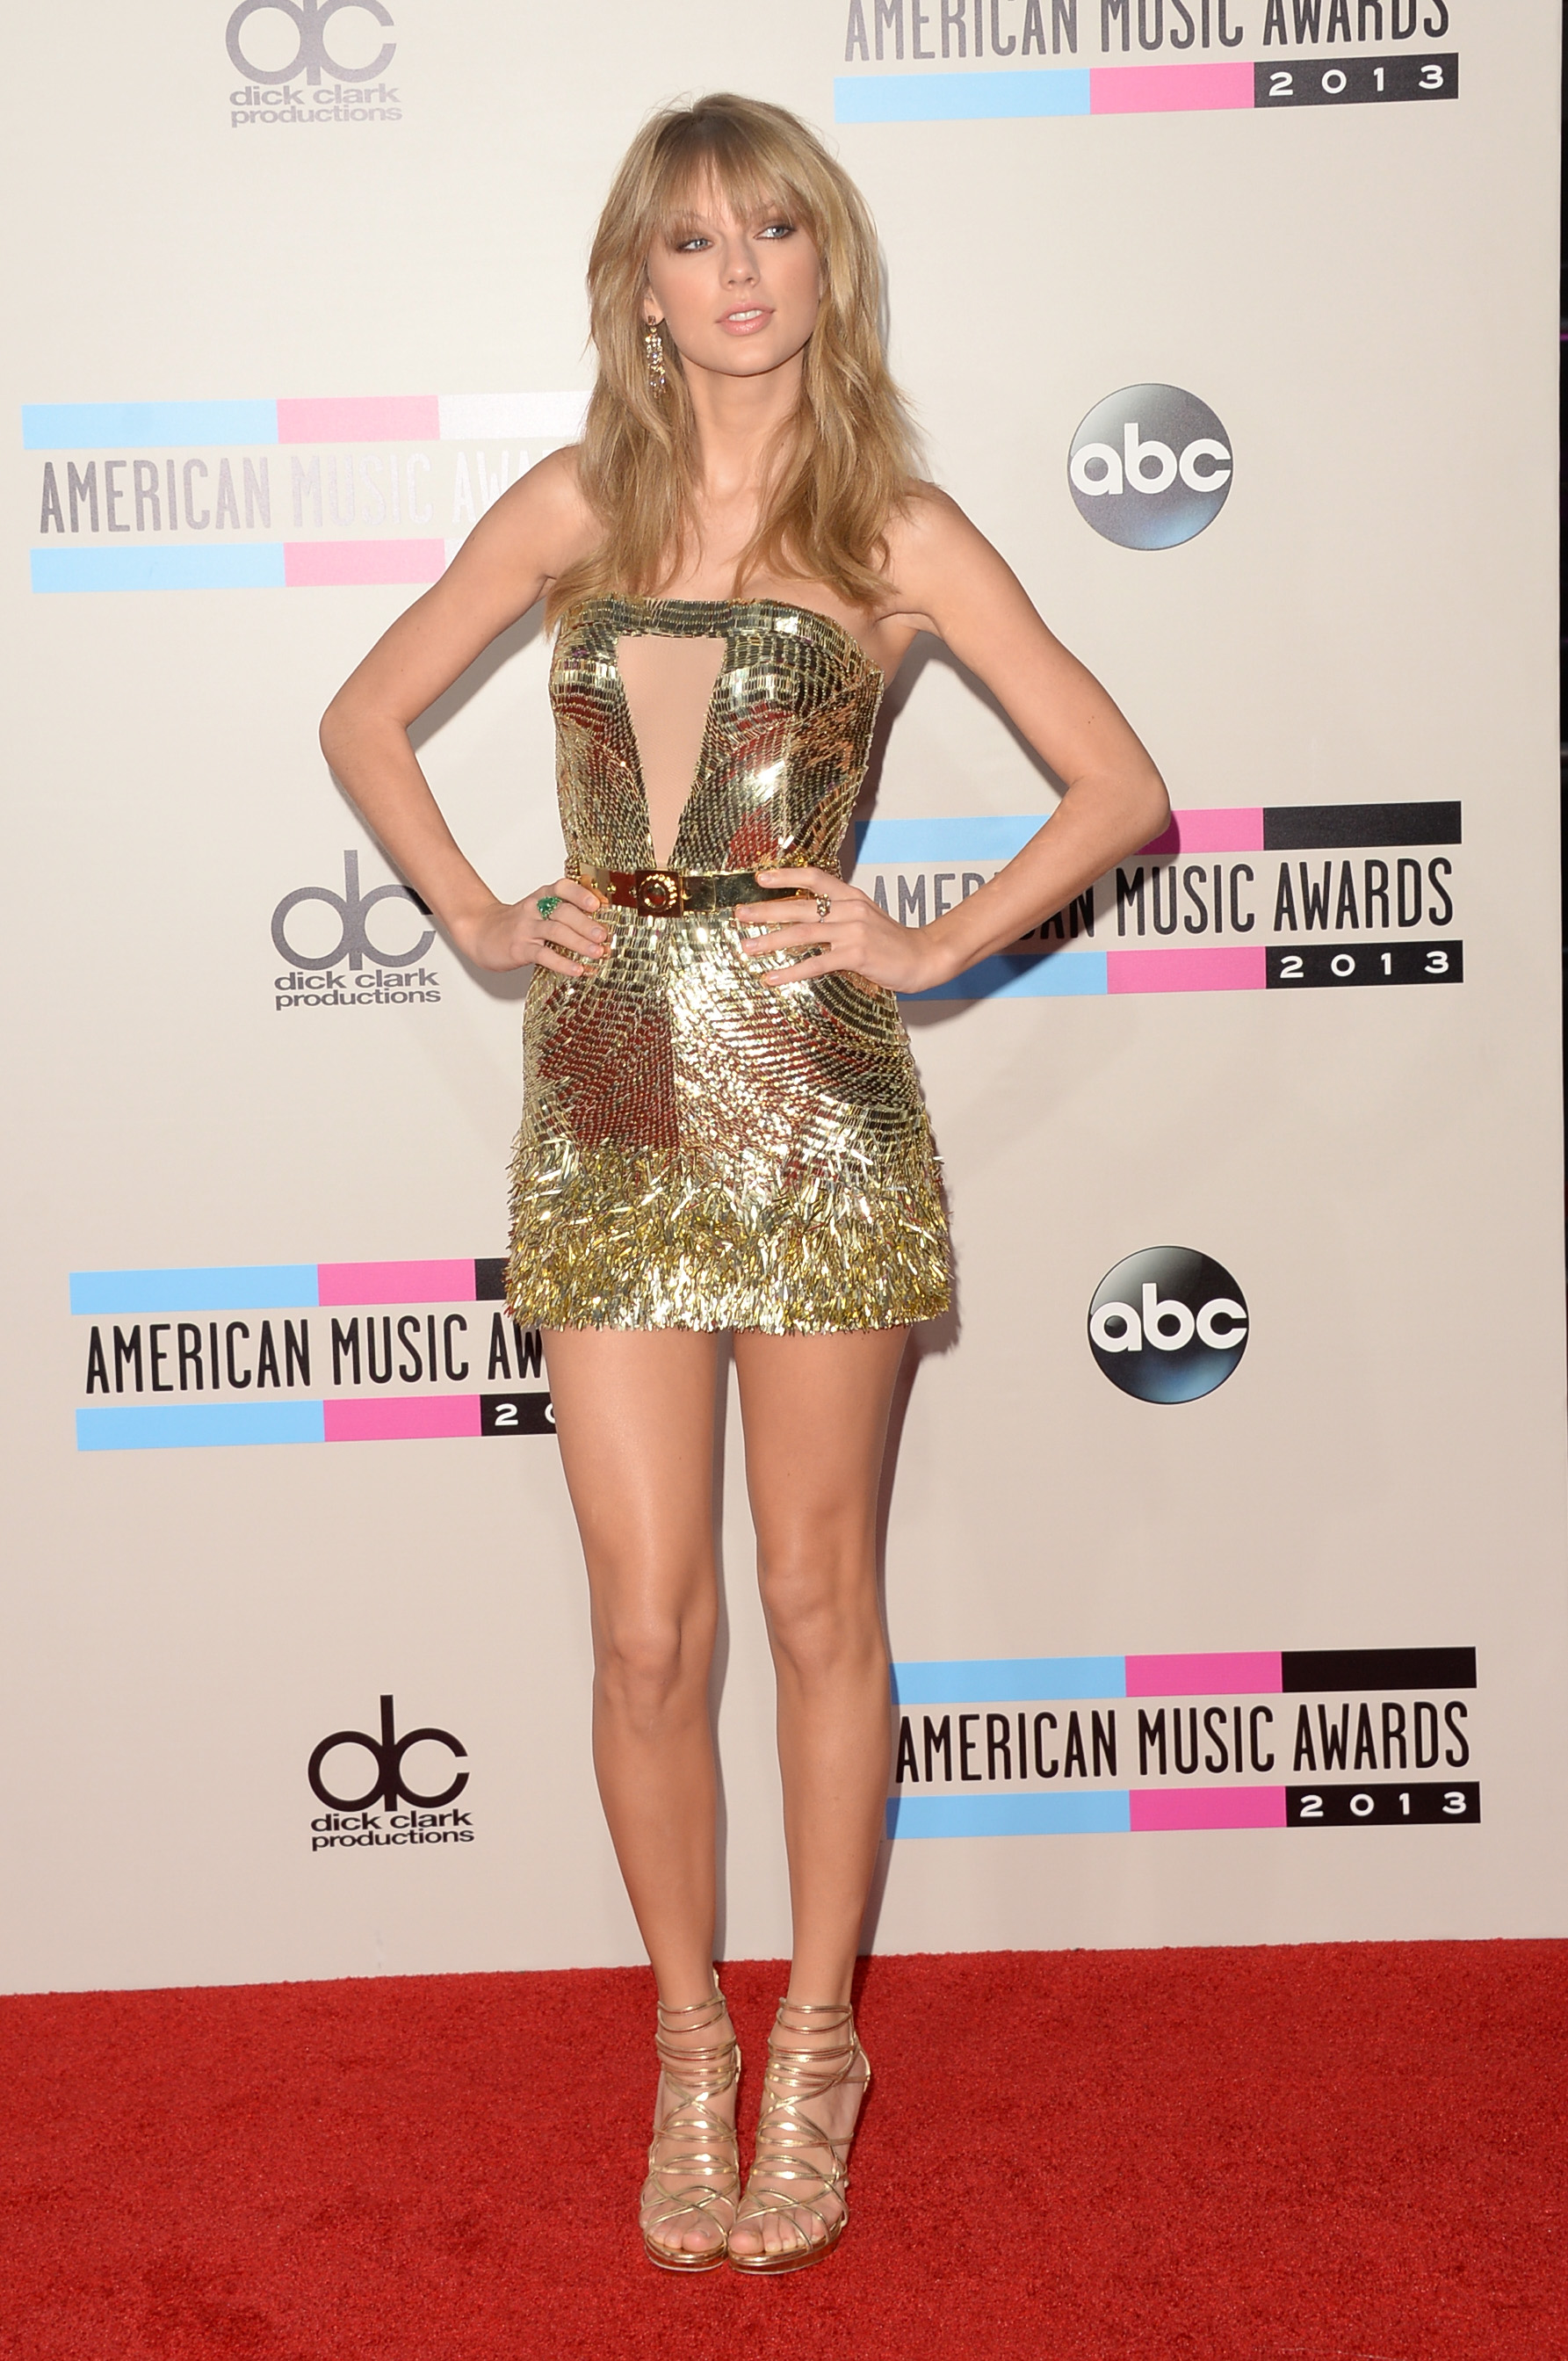 http://taylorpictures.net/albums/app/2013/americanmusicawards/006.jpg